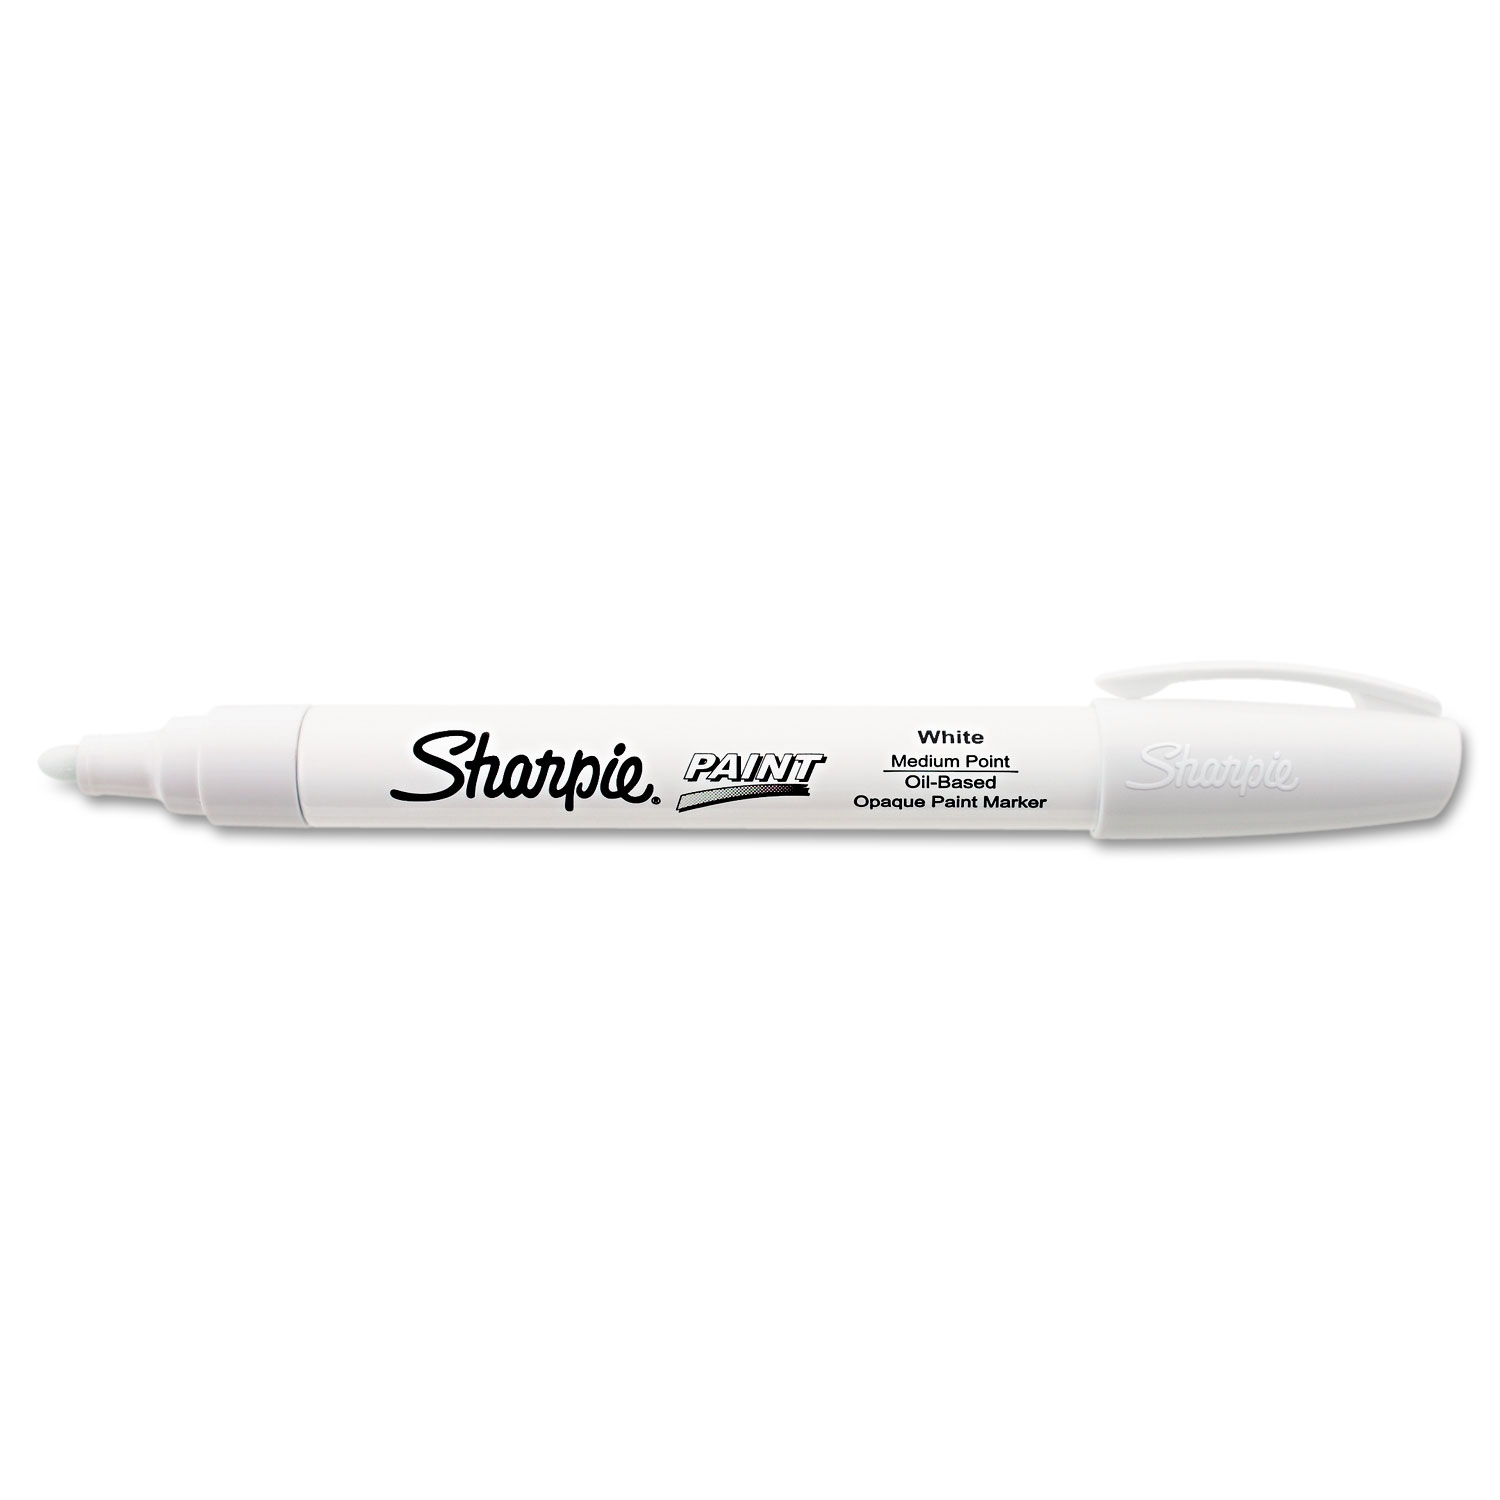 Sharpie® Paint Permanent Marker - Medium Bullet Tip, White